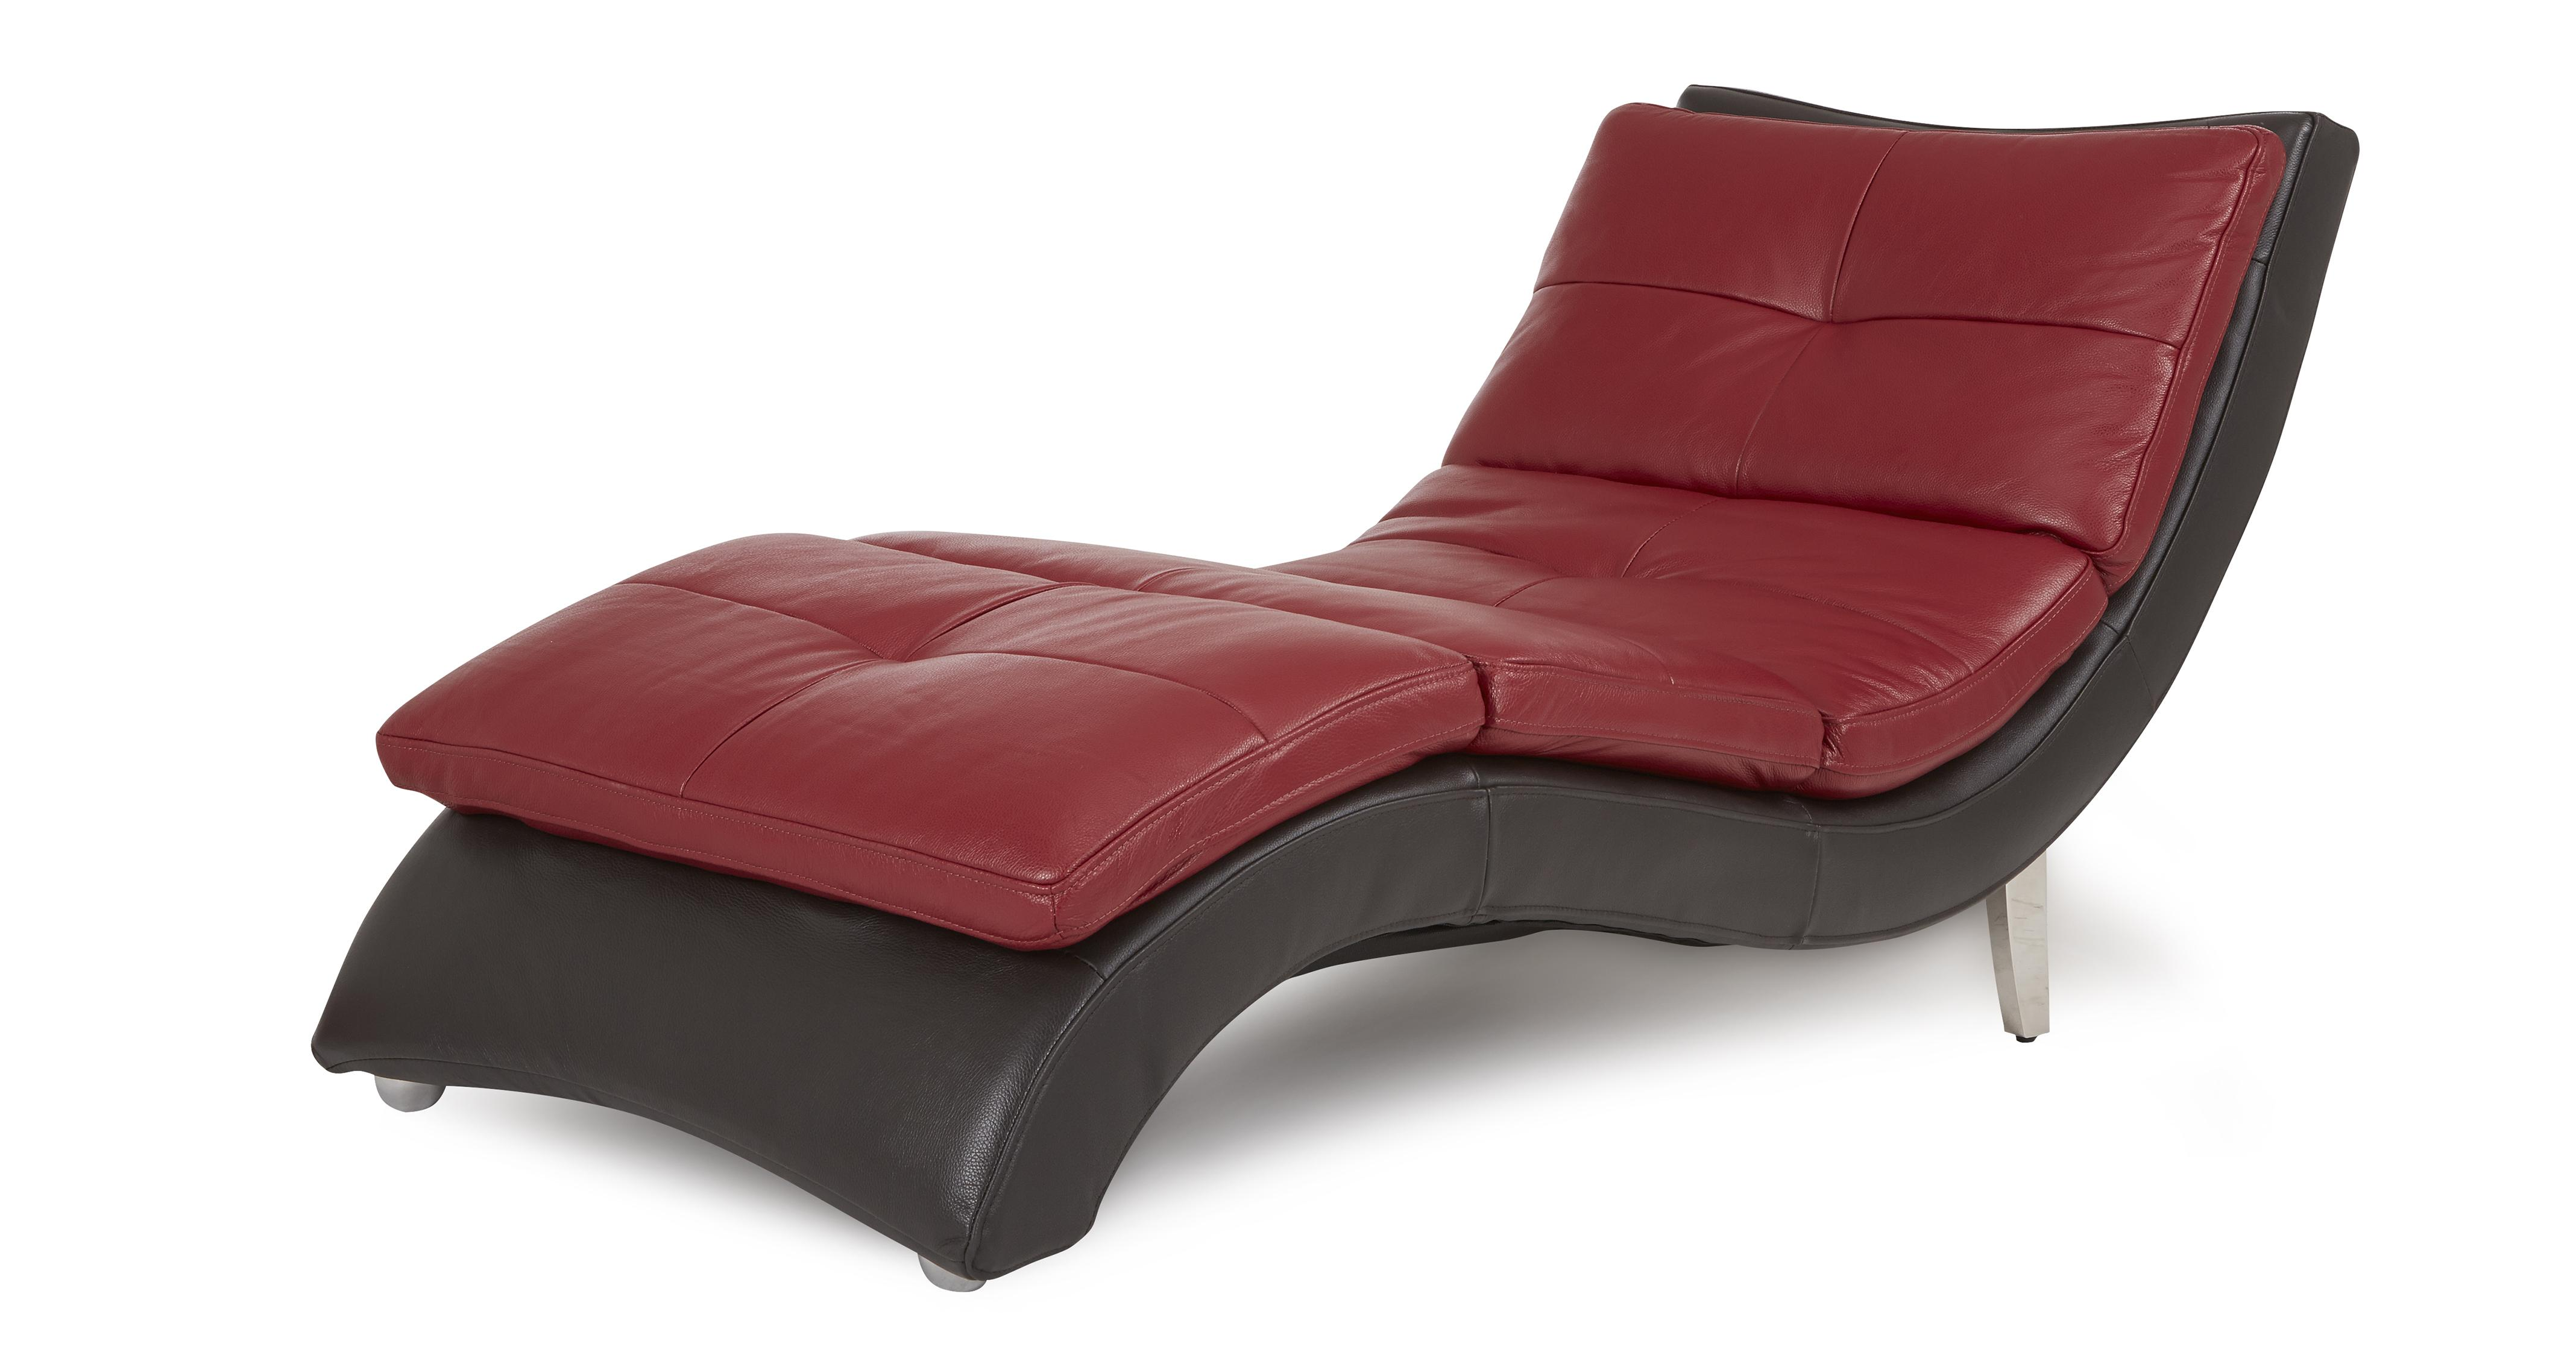 bedroom chair dfs foam toddler canada cyber claret leather couch chaise lounger ebay